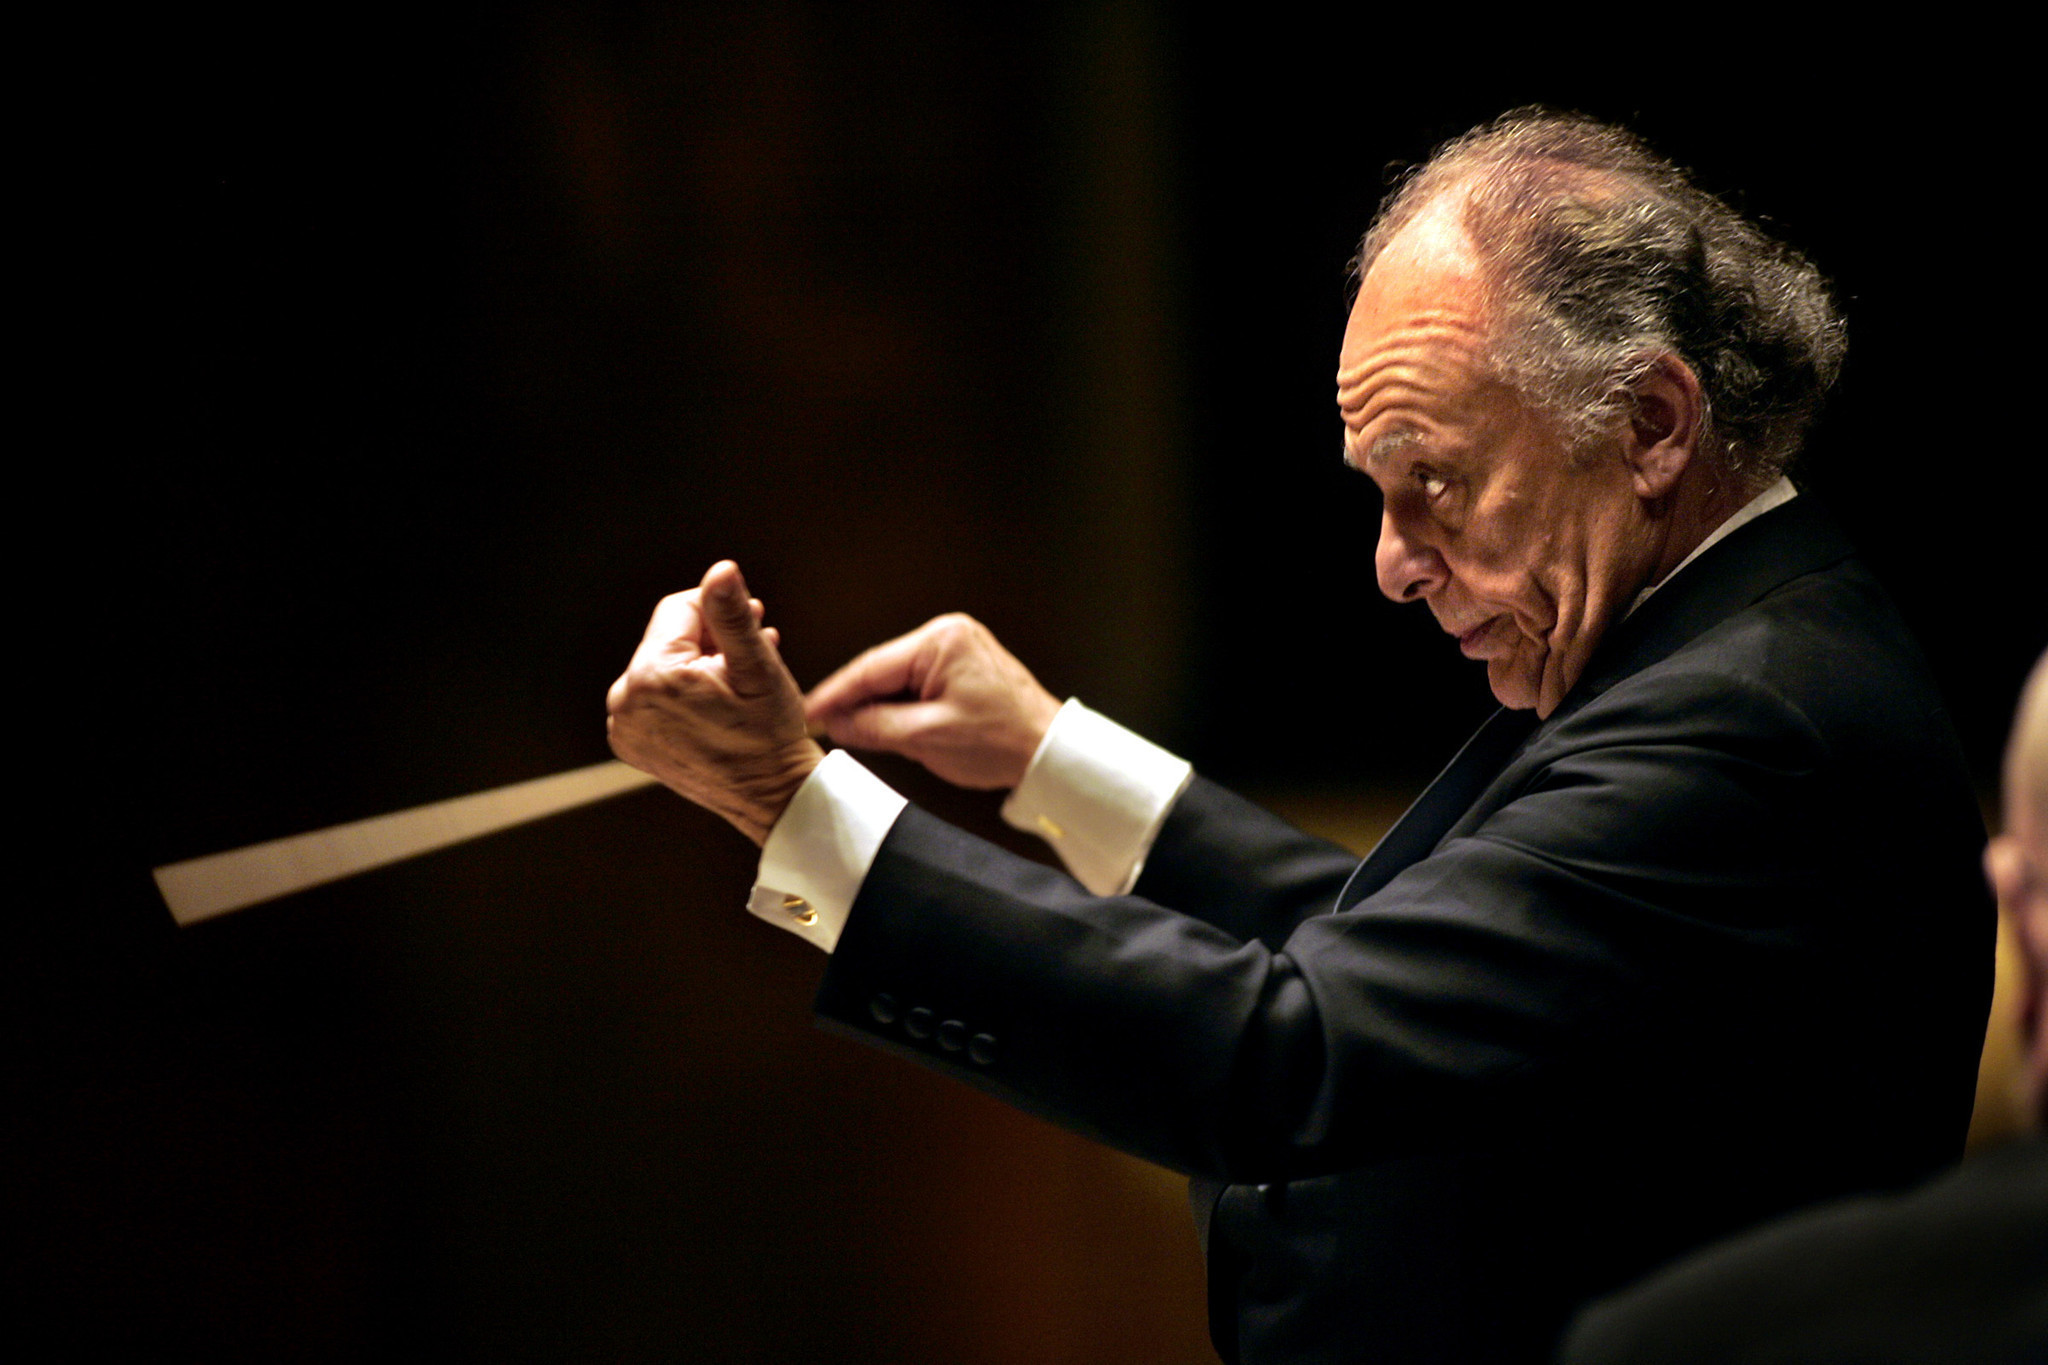 An Appreciation: Lorin Maazel Conducted Himself Inimitably